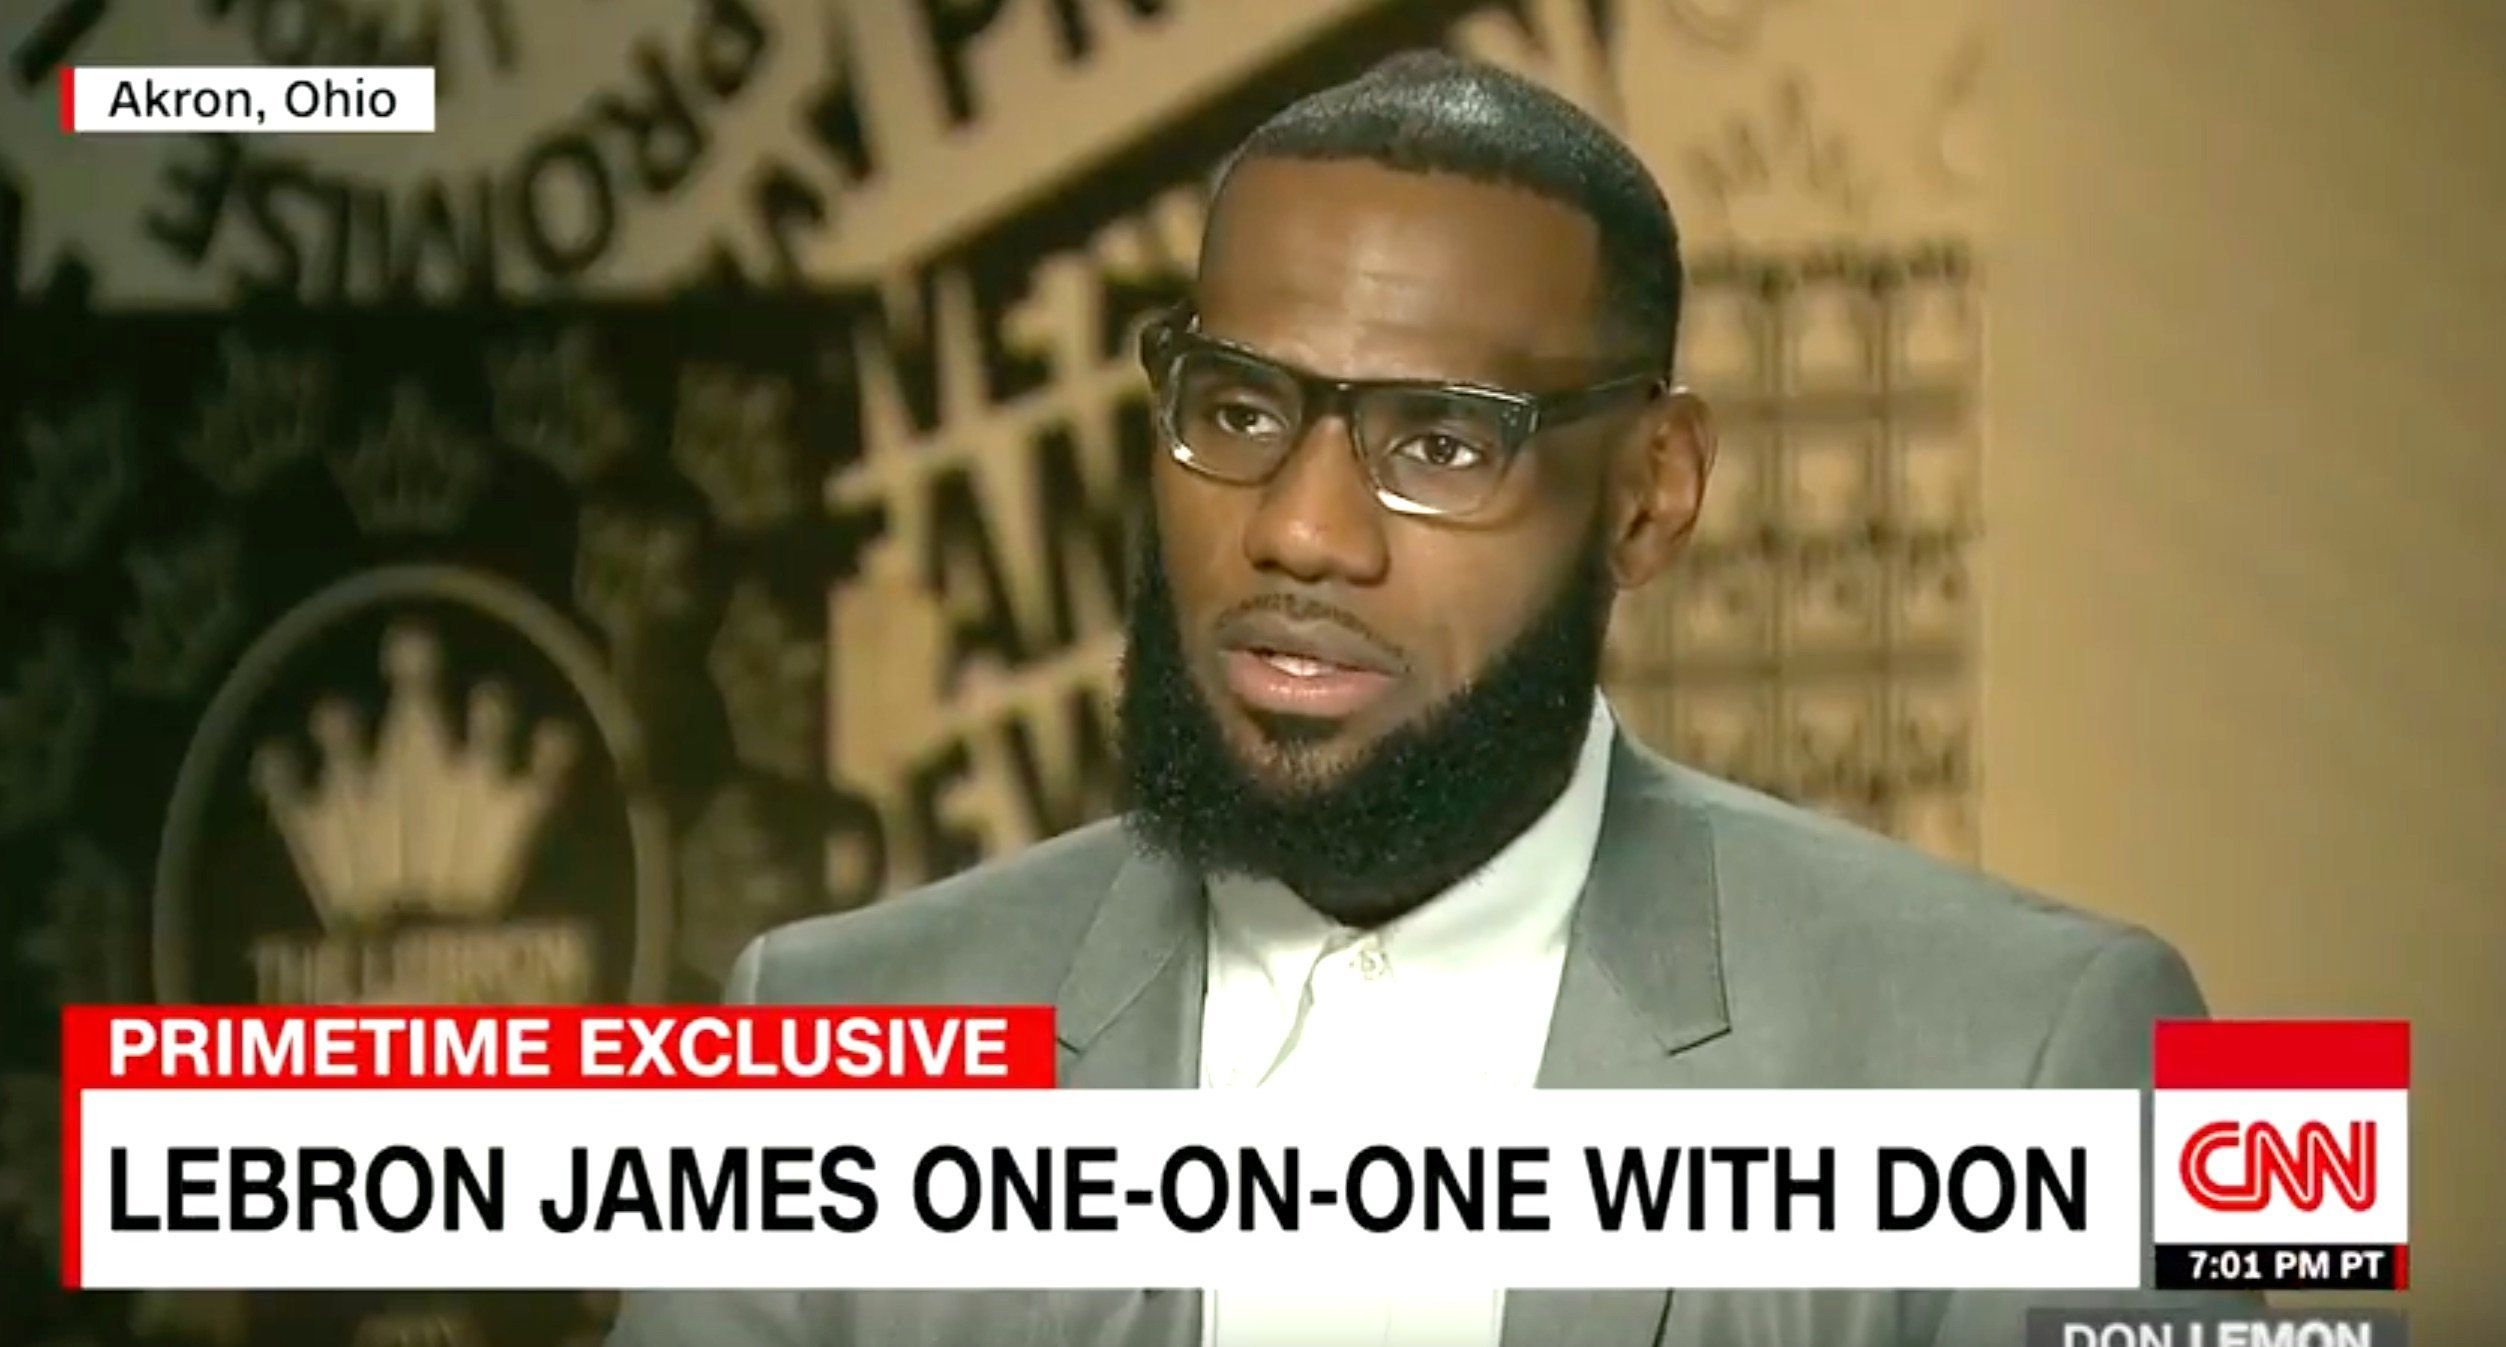 LeBron James Is Done With Trump: 'I Would Never Sit Across From Him'